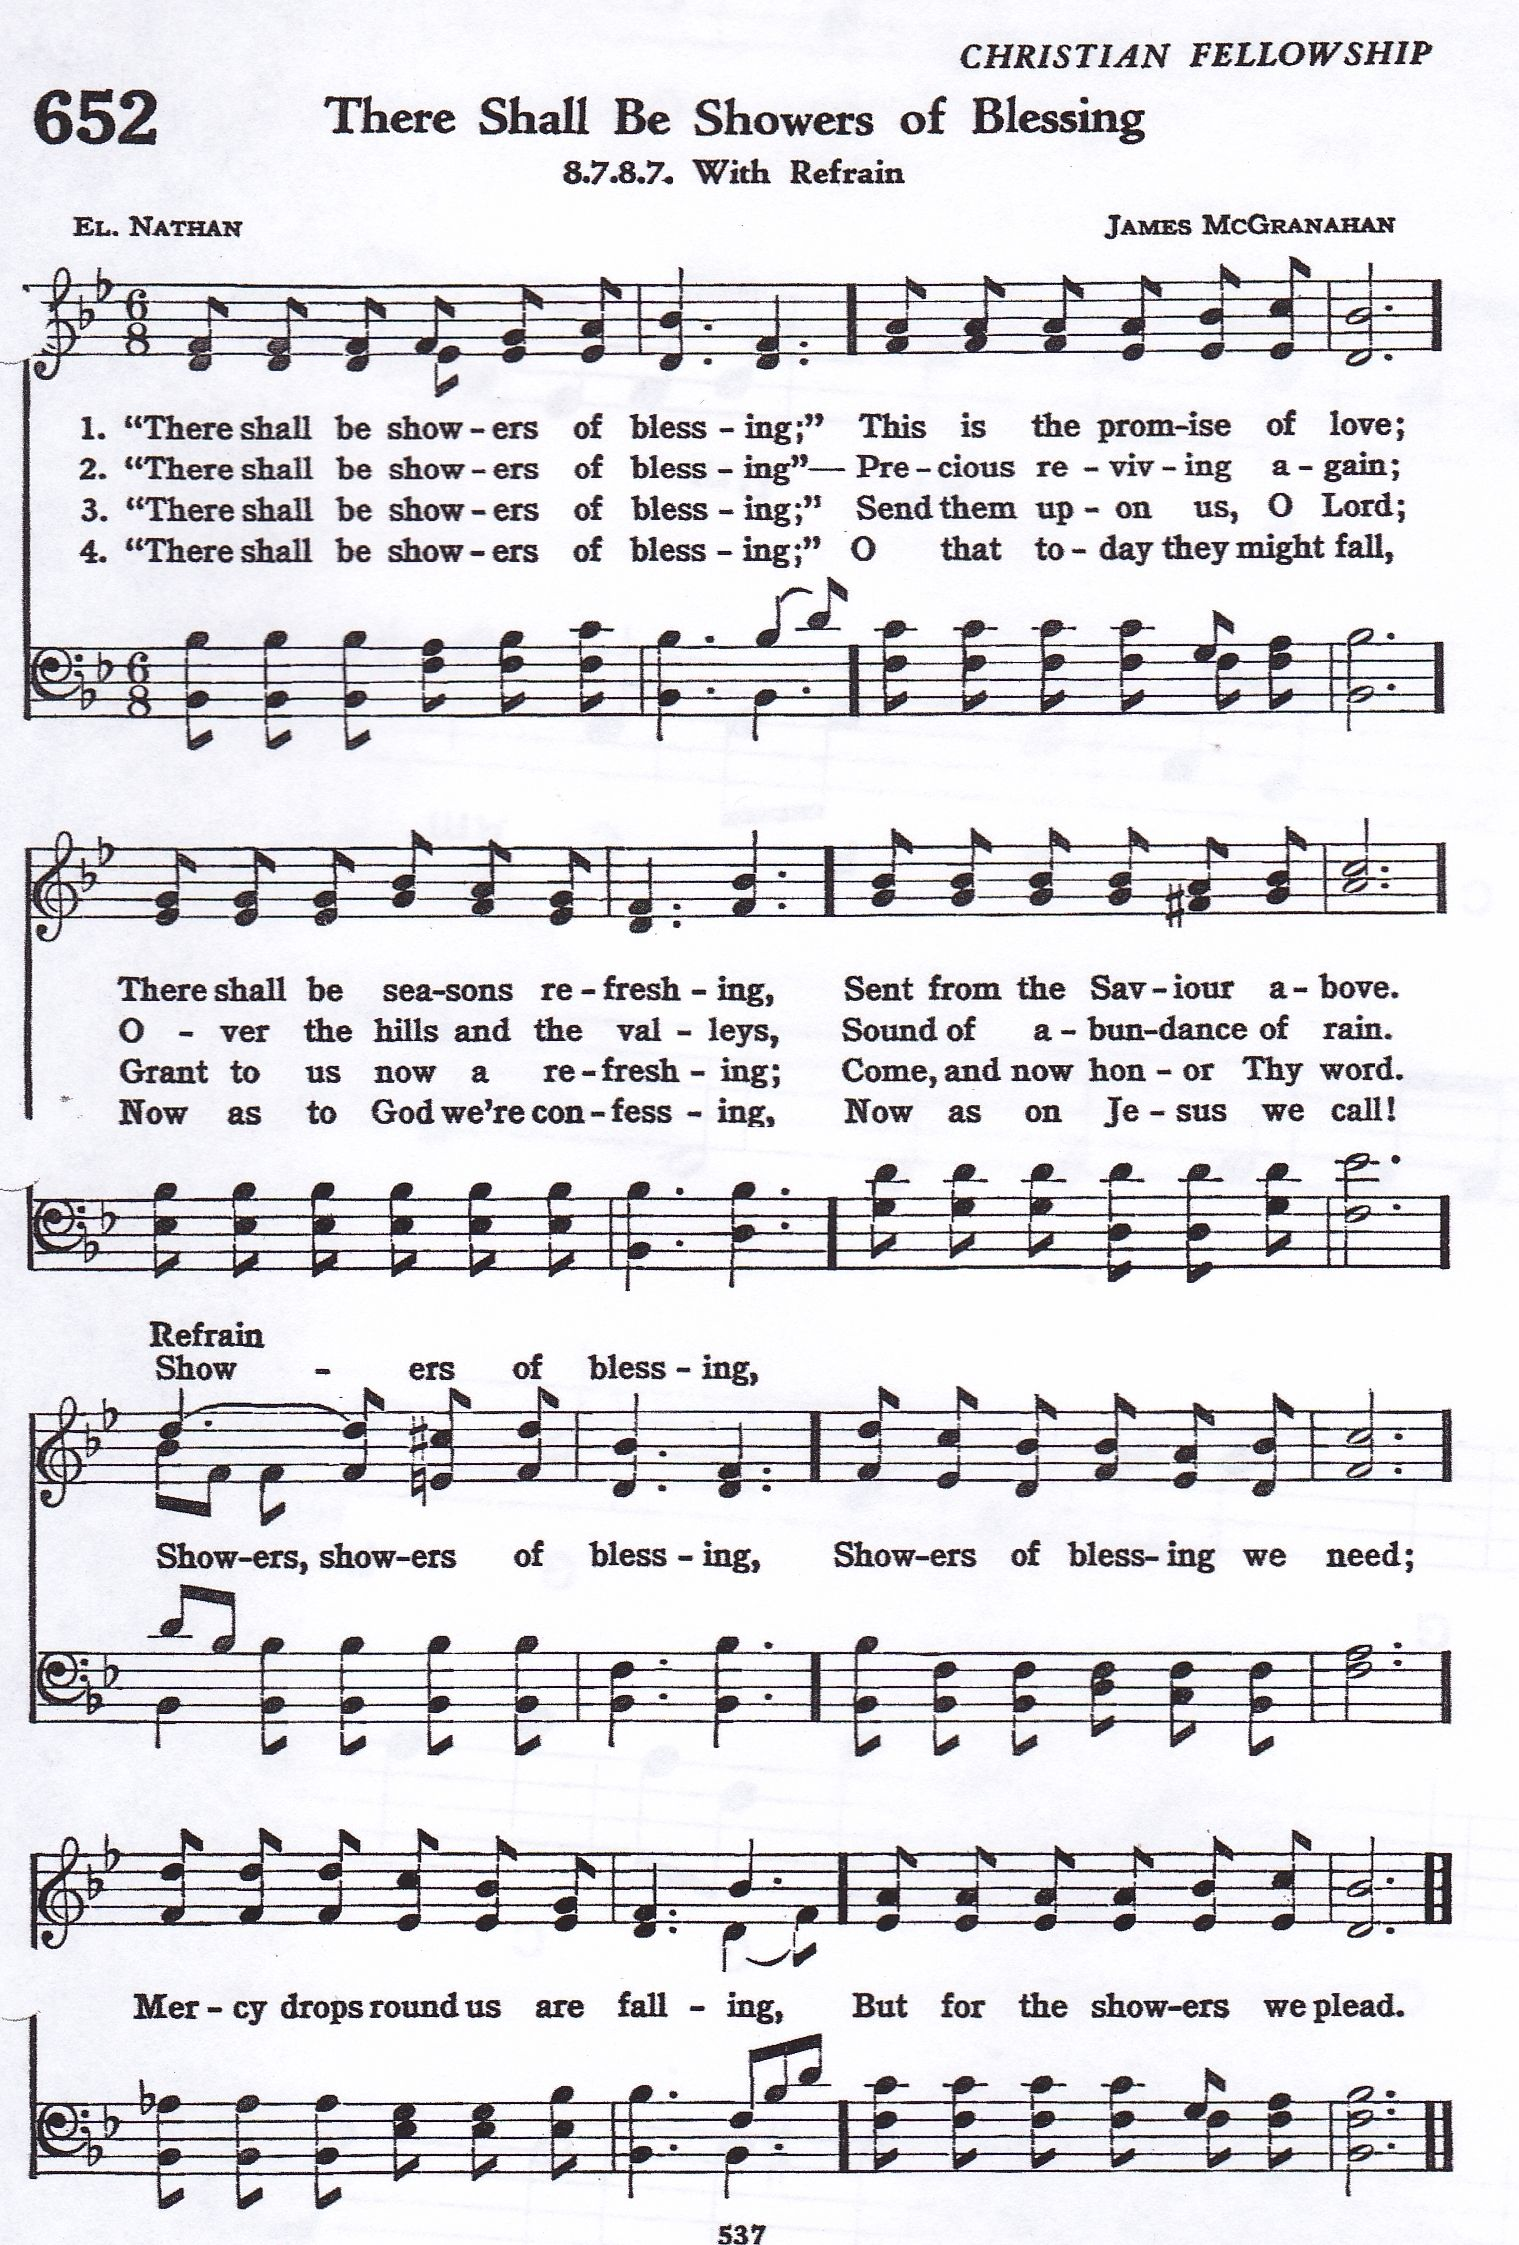 There Shall Be Showers of Blessing (Hymn) SATB | Hymns in 2019